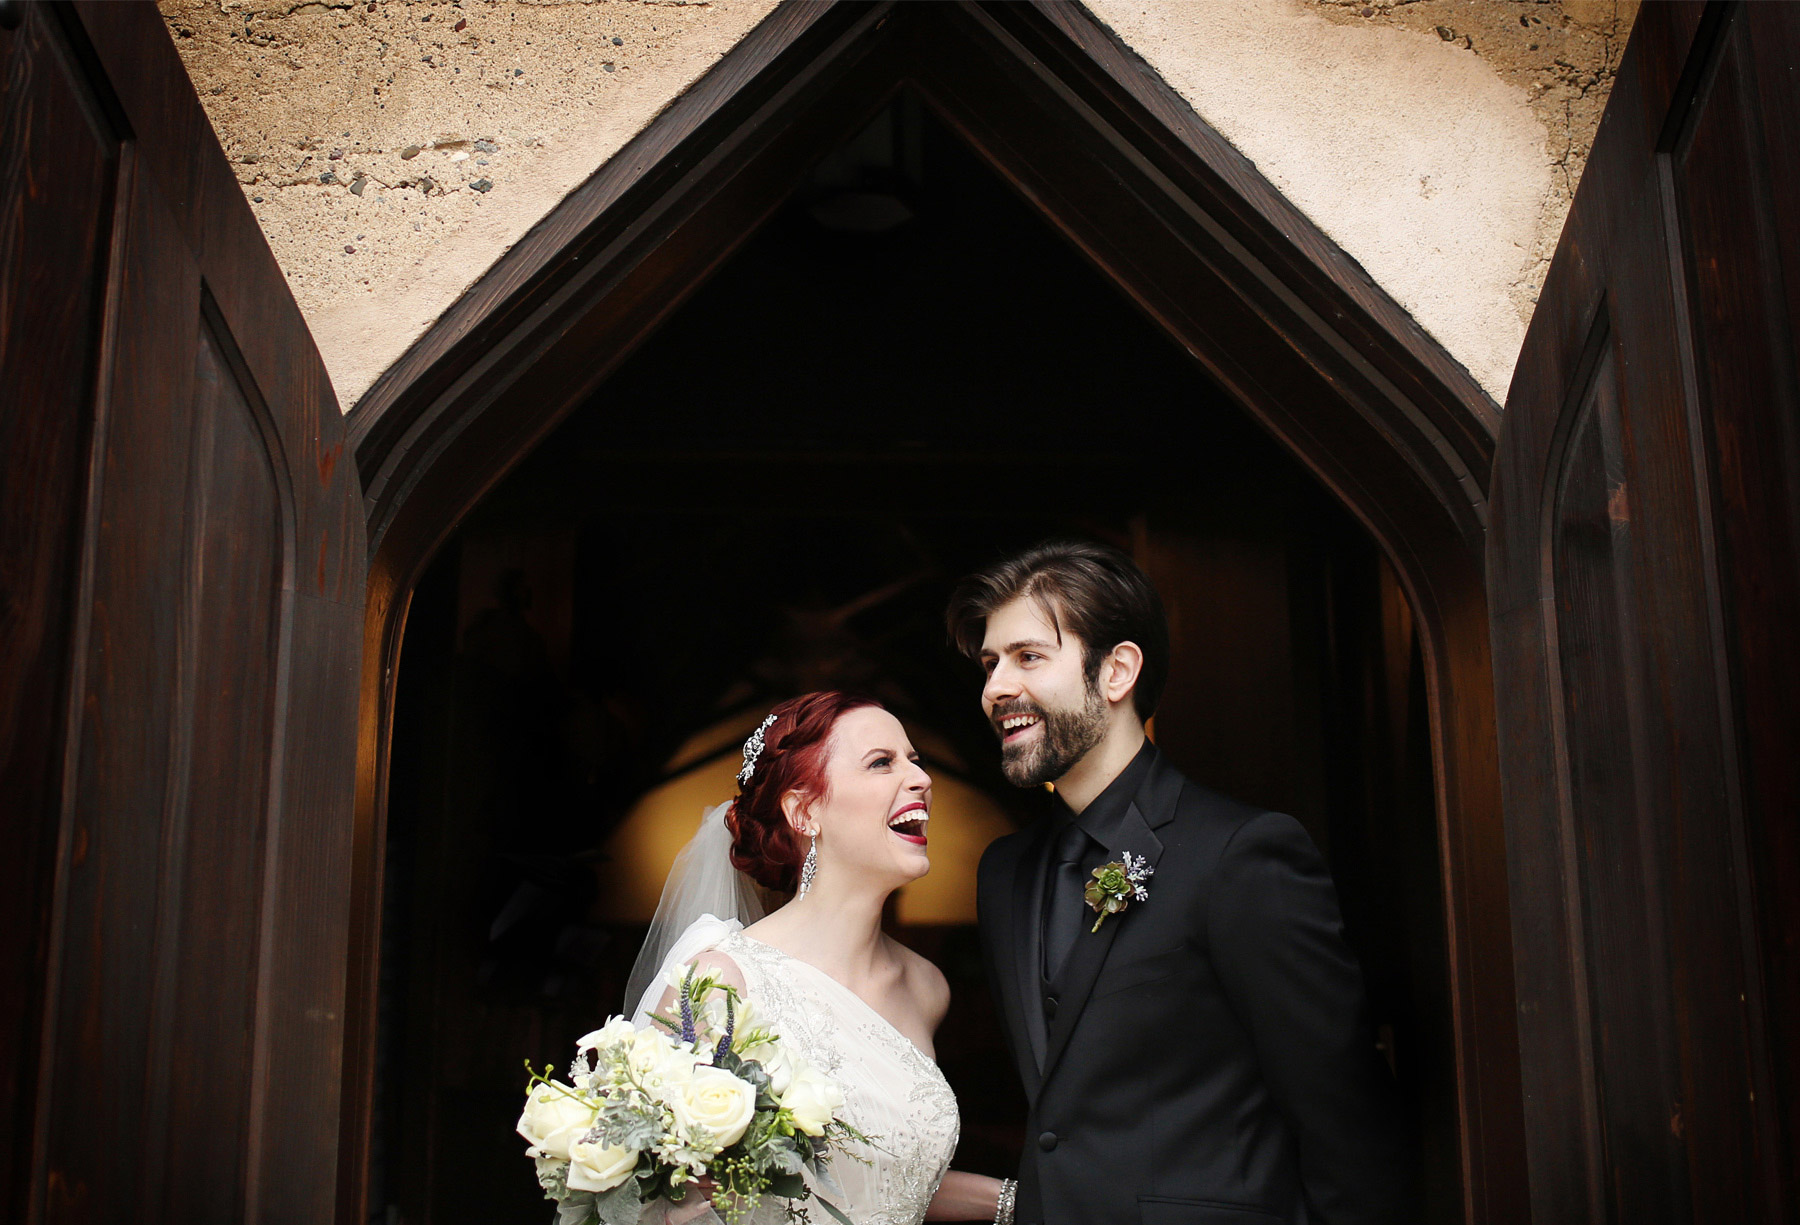 06-Minneapolis-Minnesota-Wedding-Photography-by-Vick-Photography-Trinity-Episcopal-Church-First-Look-Ashley-and-Aaron.jpg